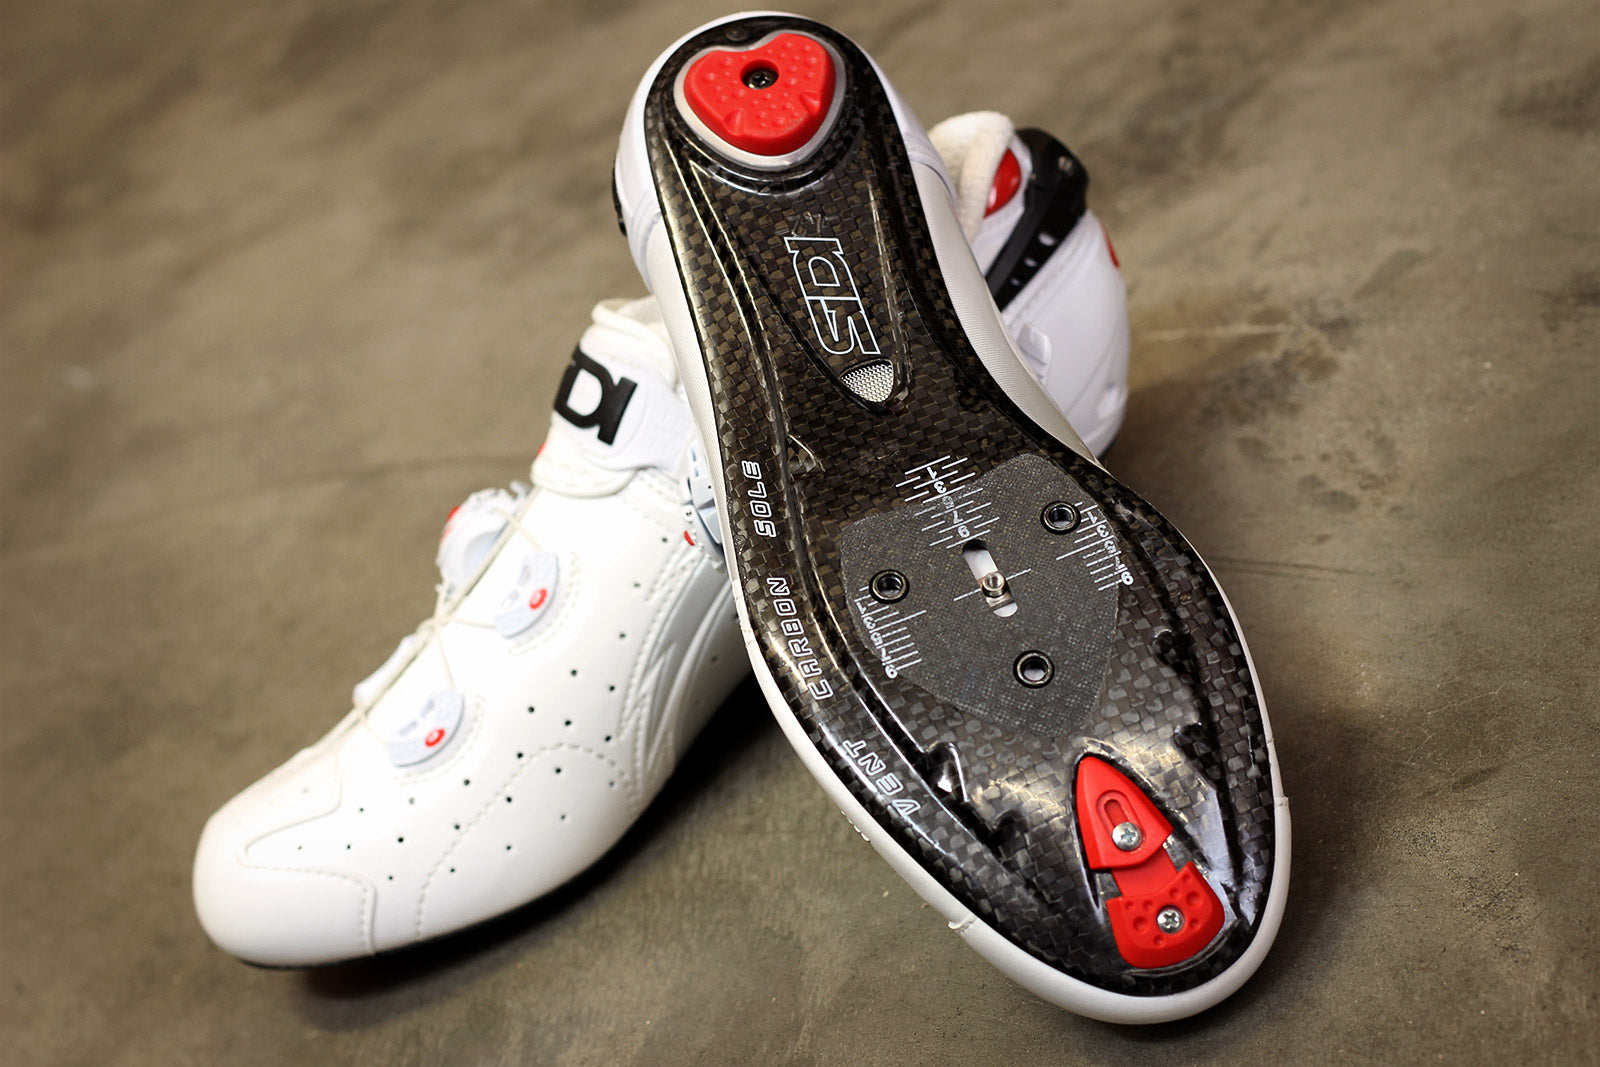 Sidi Wire Carbon review